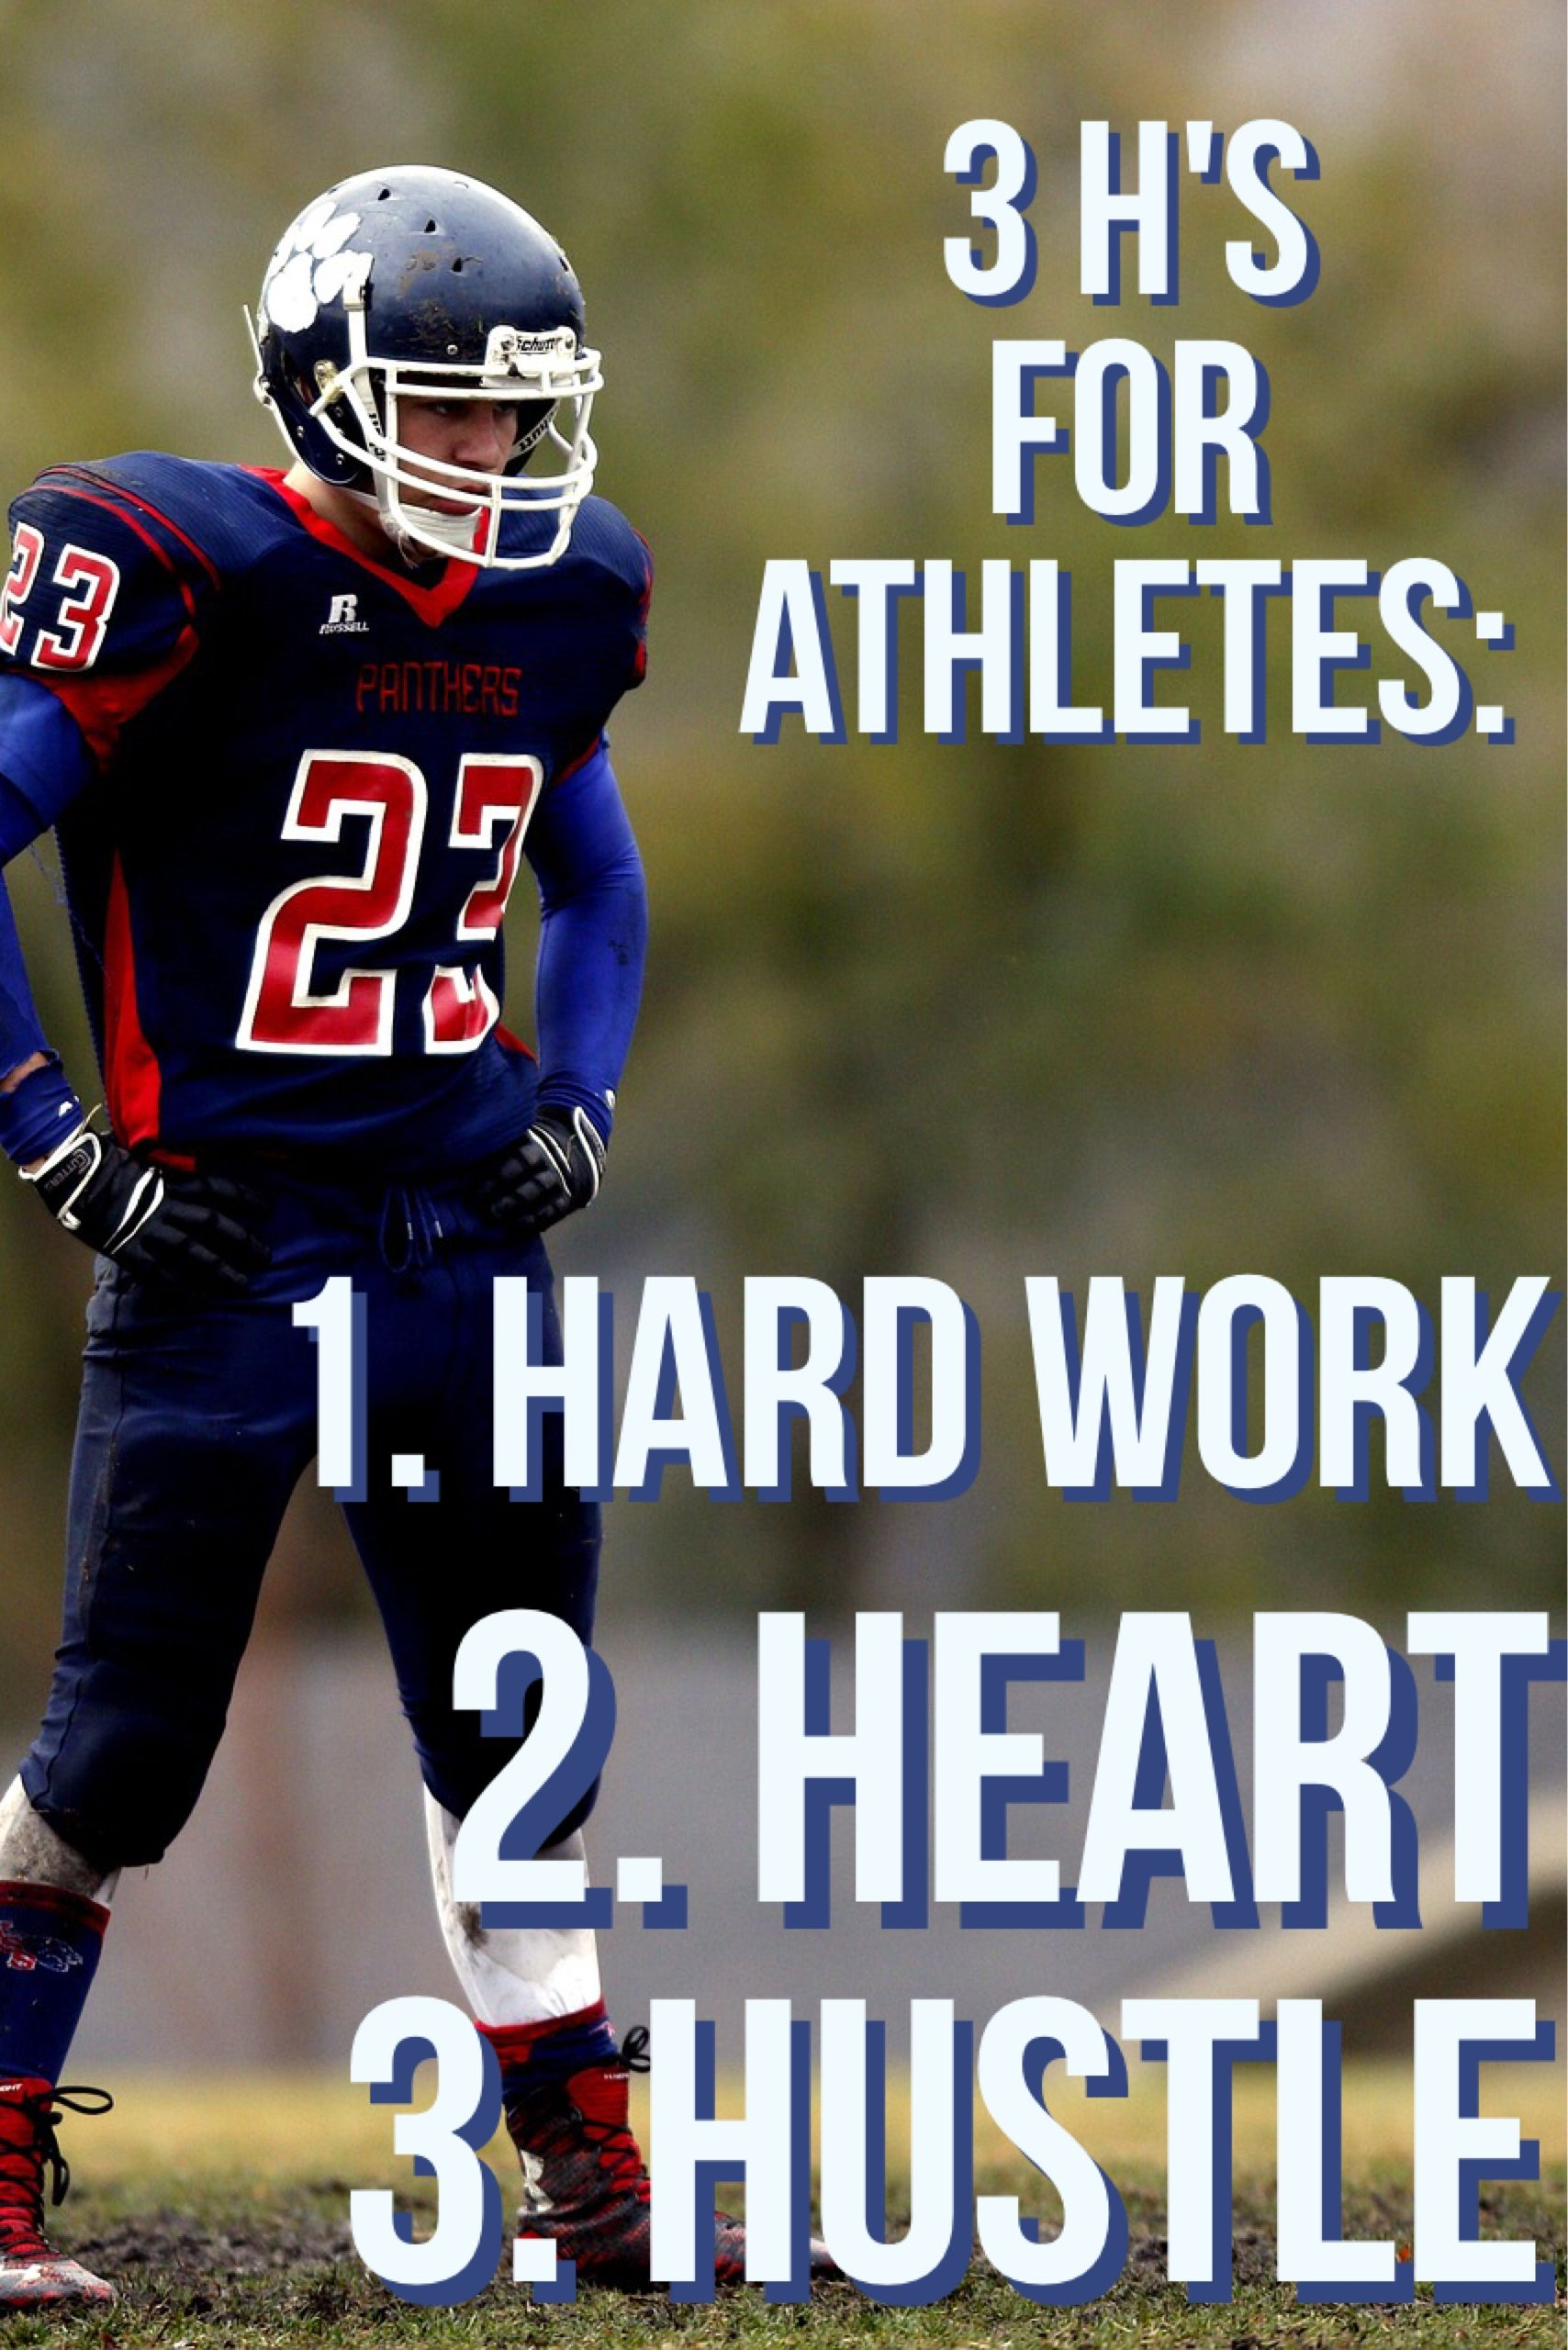 3 H's for Athletes: Hard Work, Heart, and HUSTLE